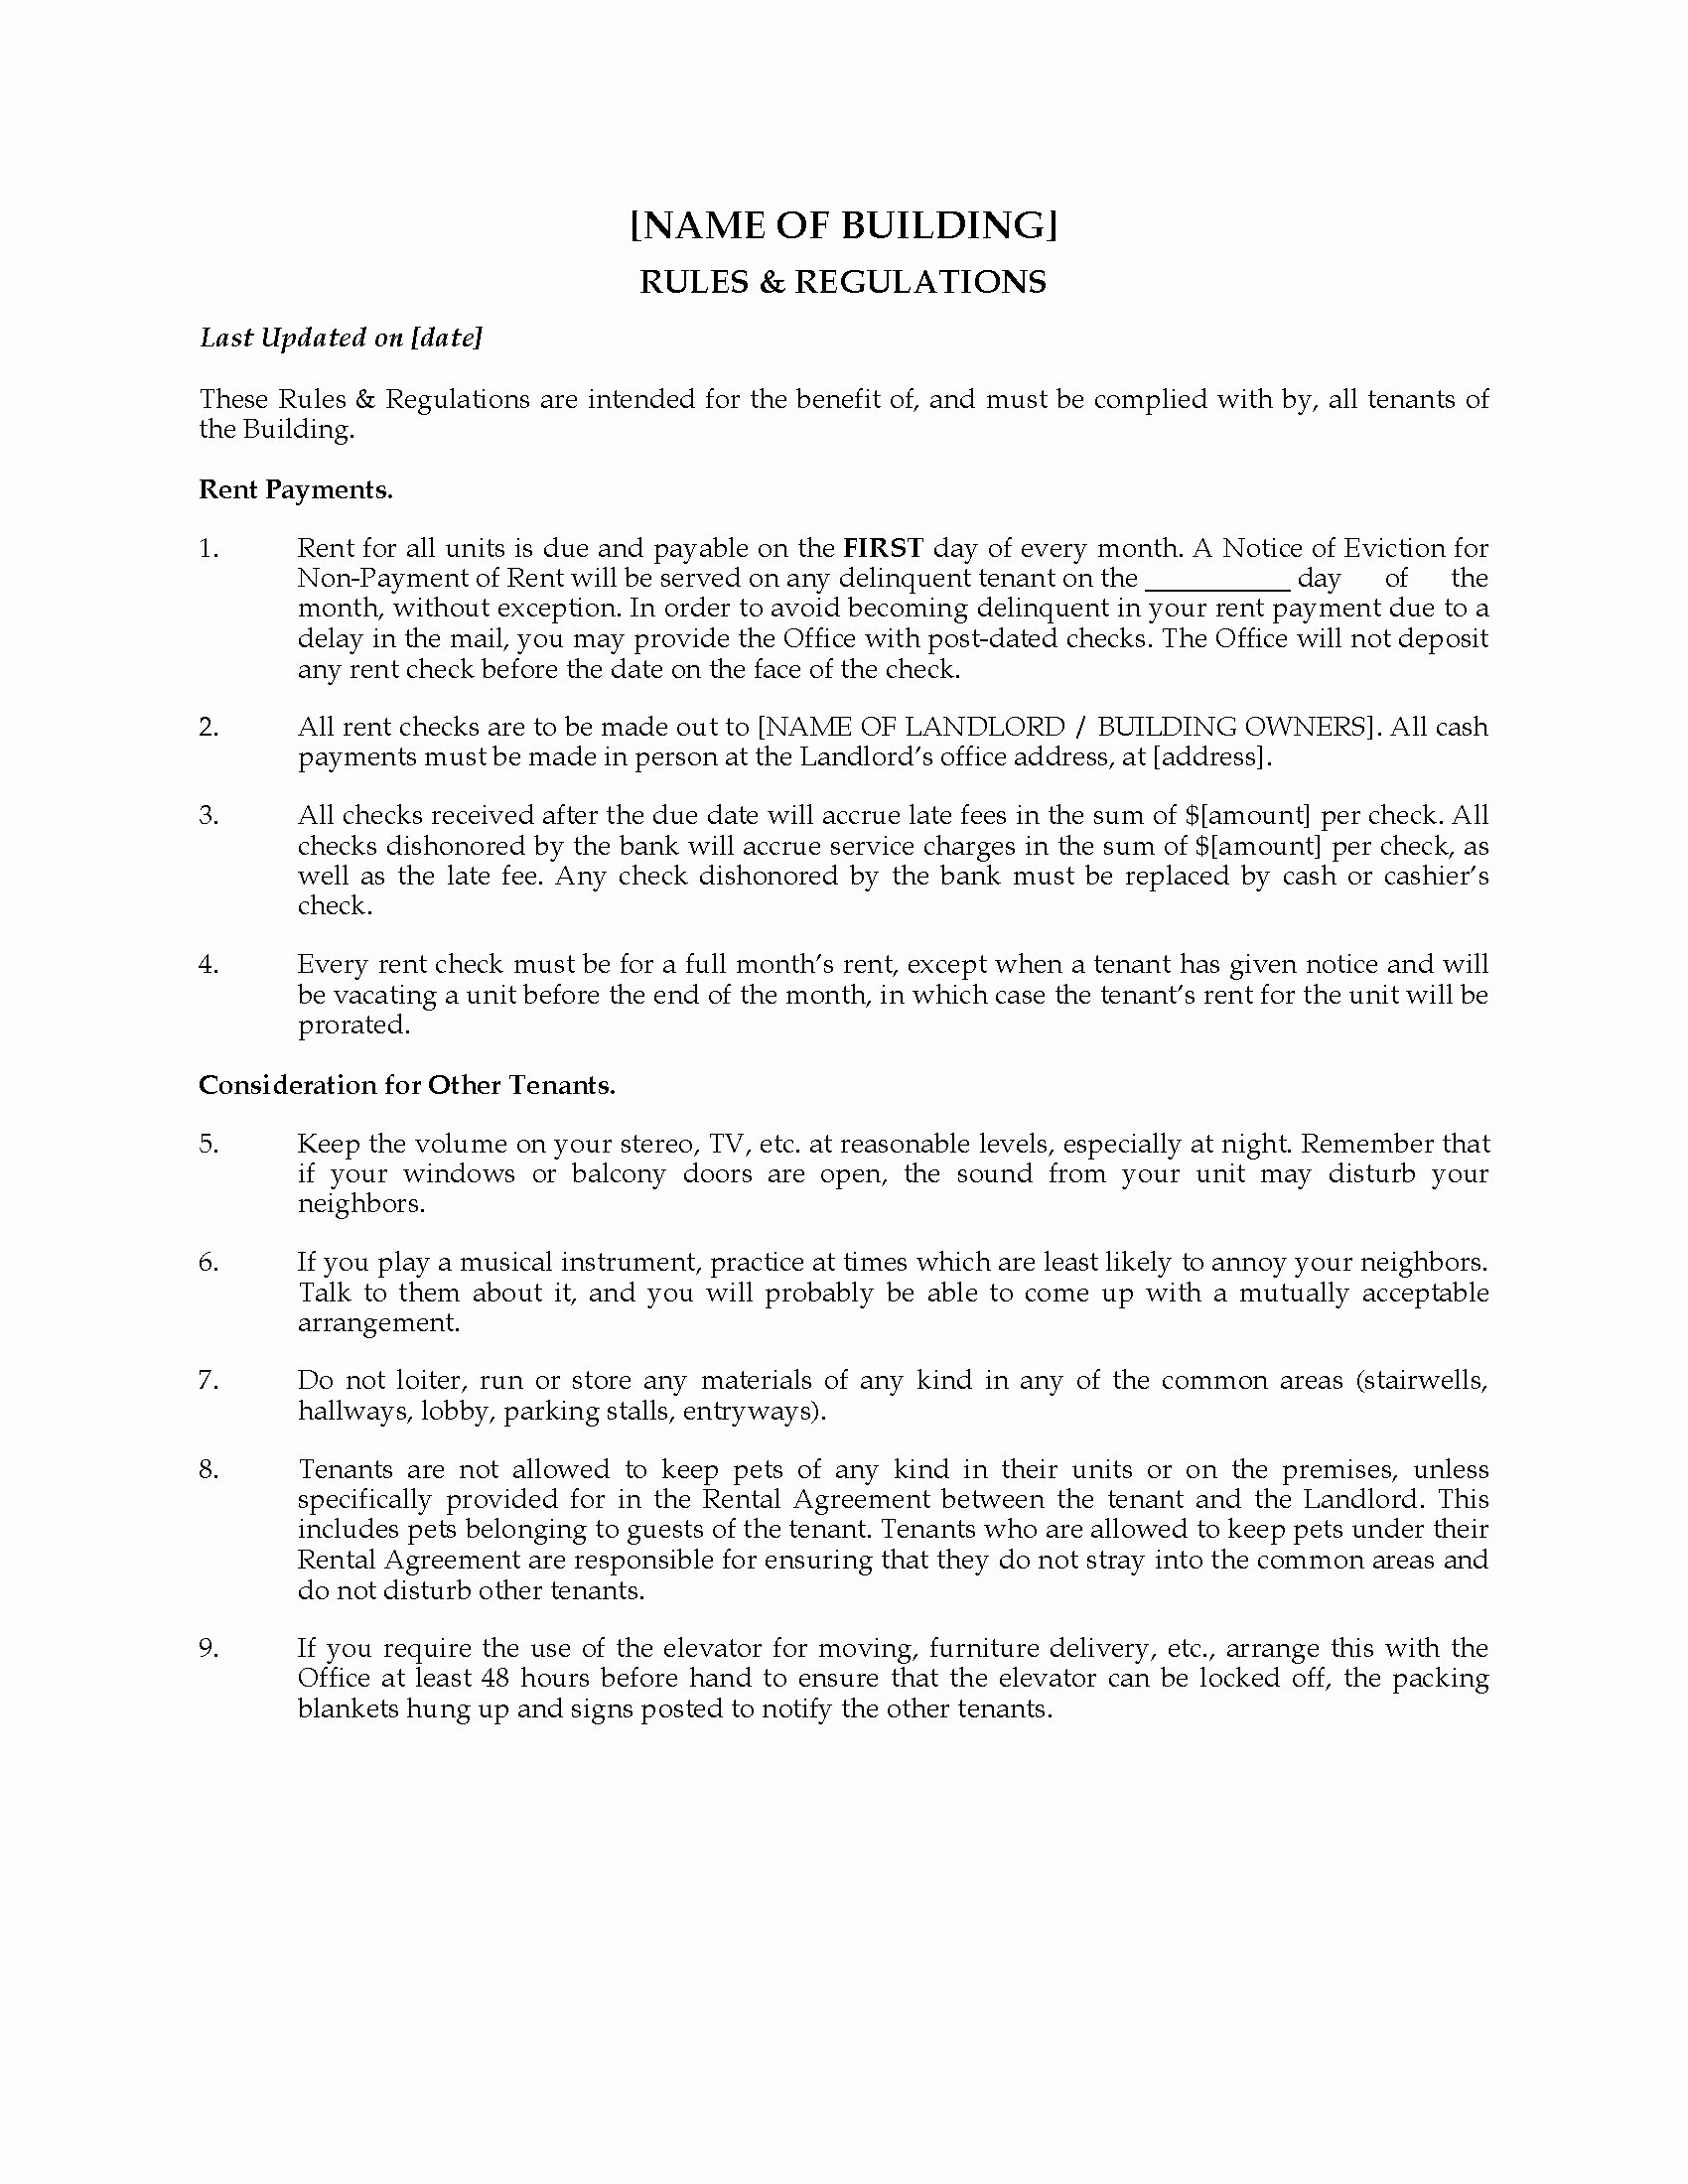 House Rules for Tenants Best Of Apartment Building Rules and Regulations